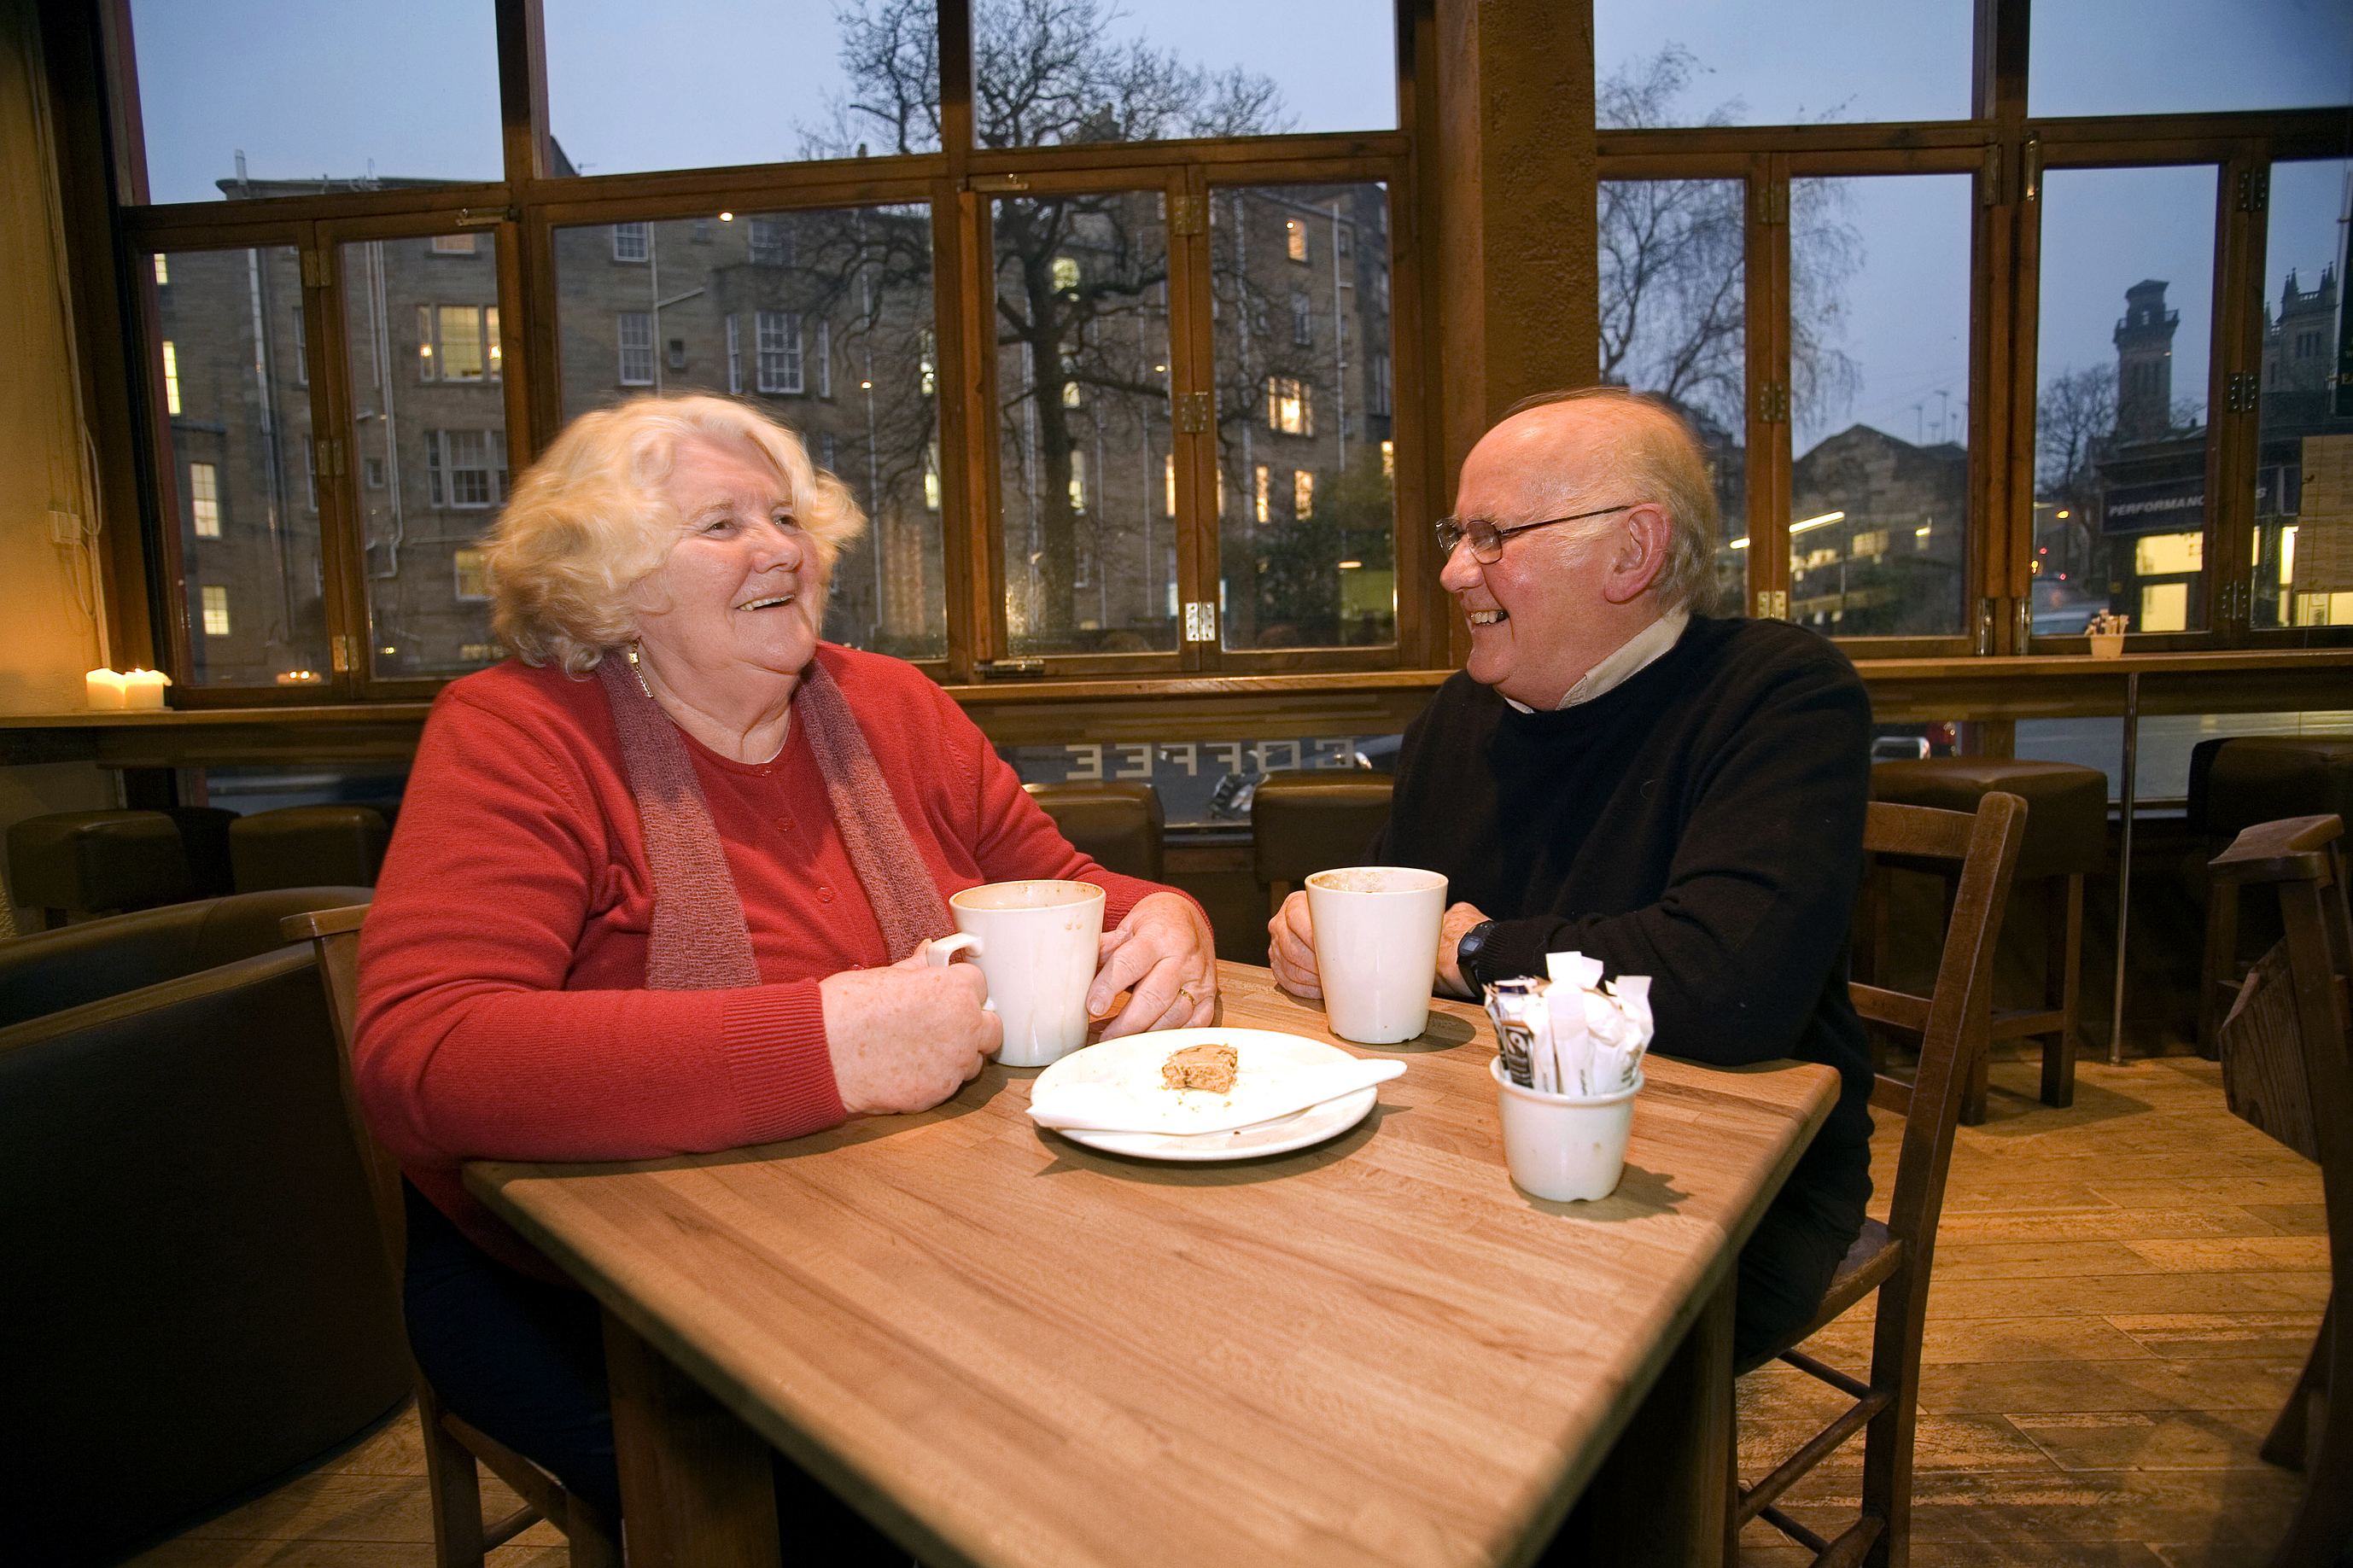 A woman and a man sitting in a cafe smiling whilst having a chat and a cup of tea each